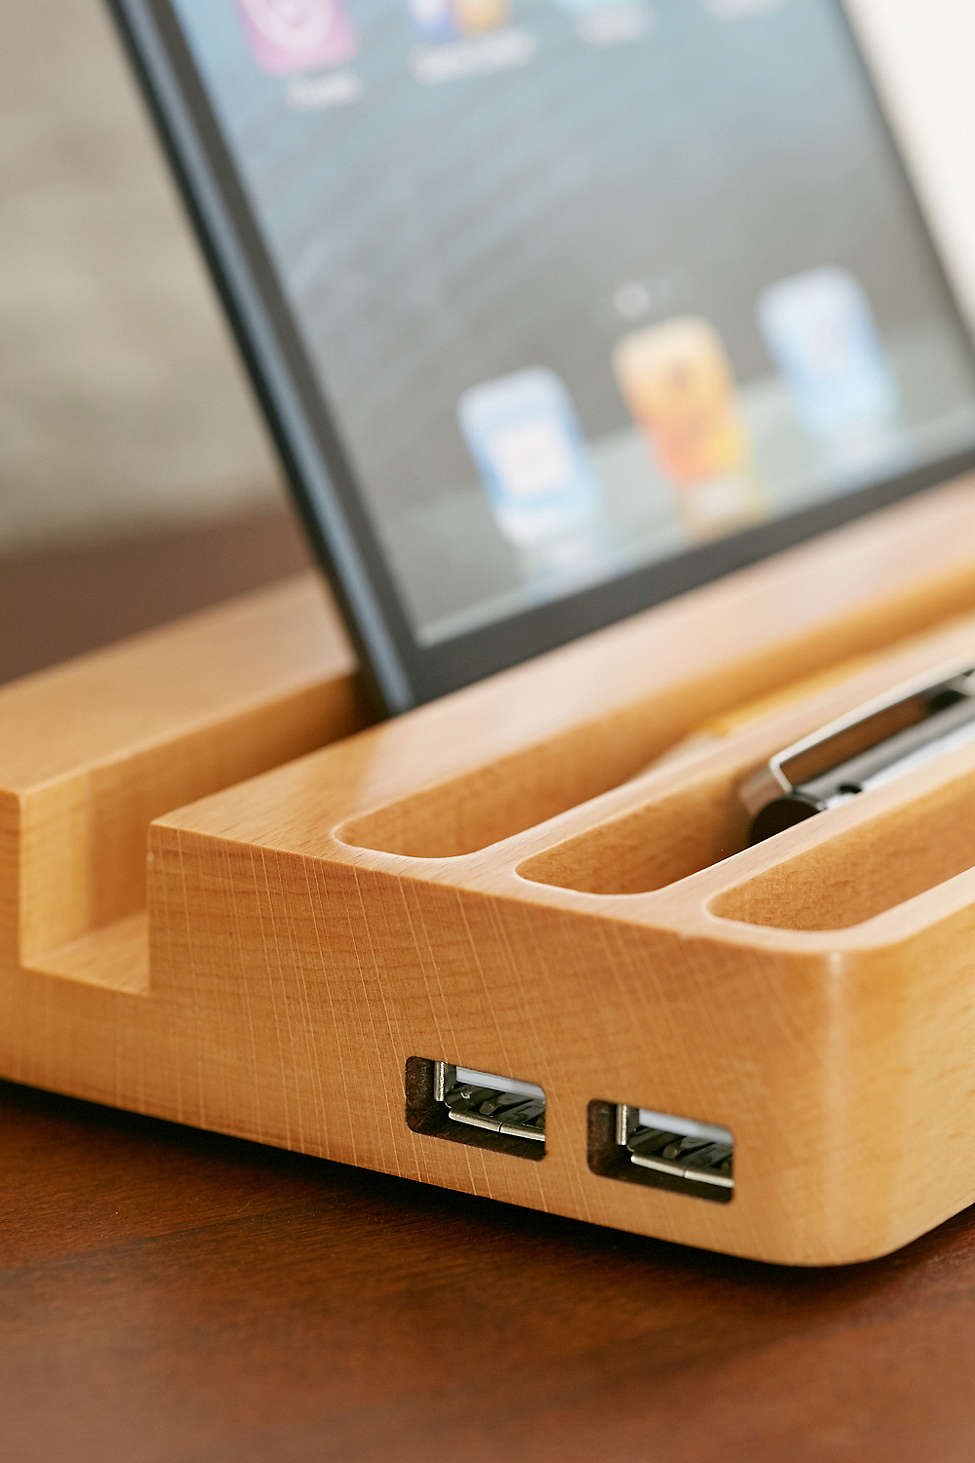 This beautiful charging station will optimize time and space.